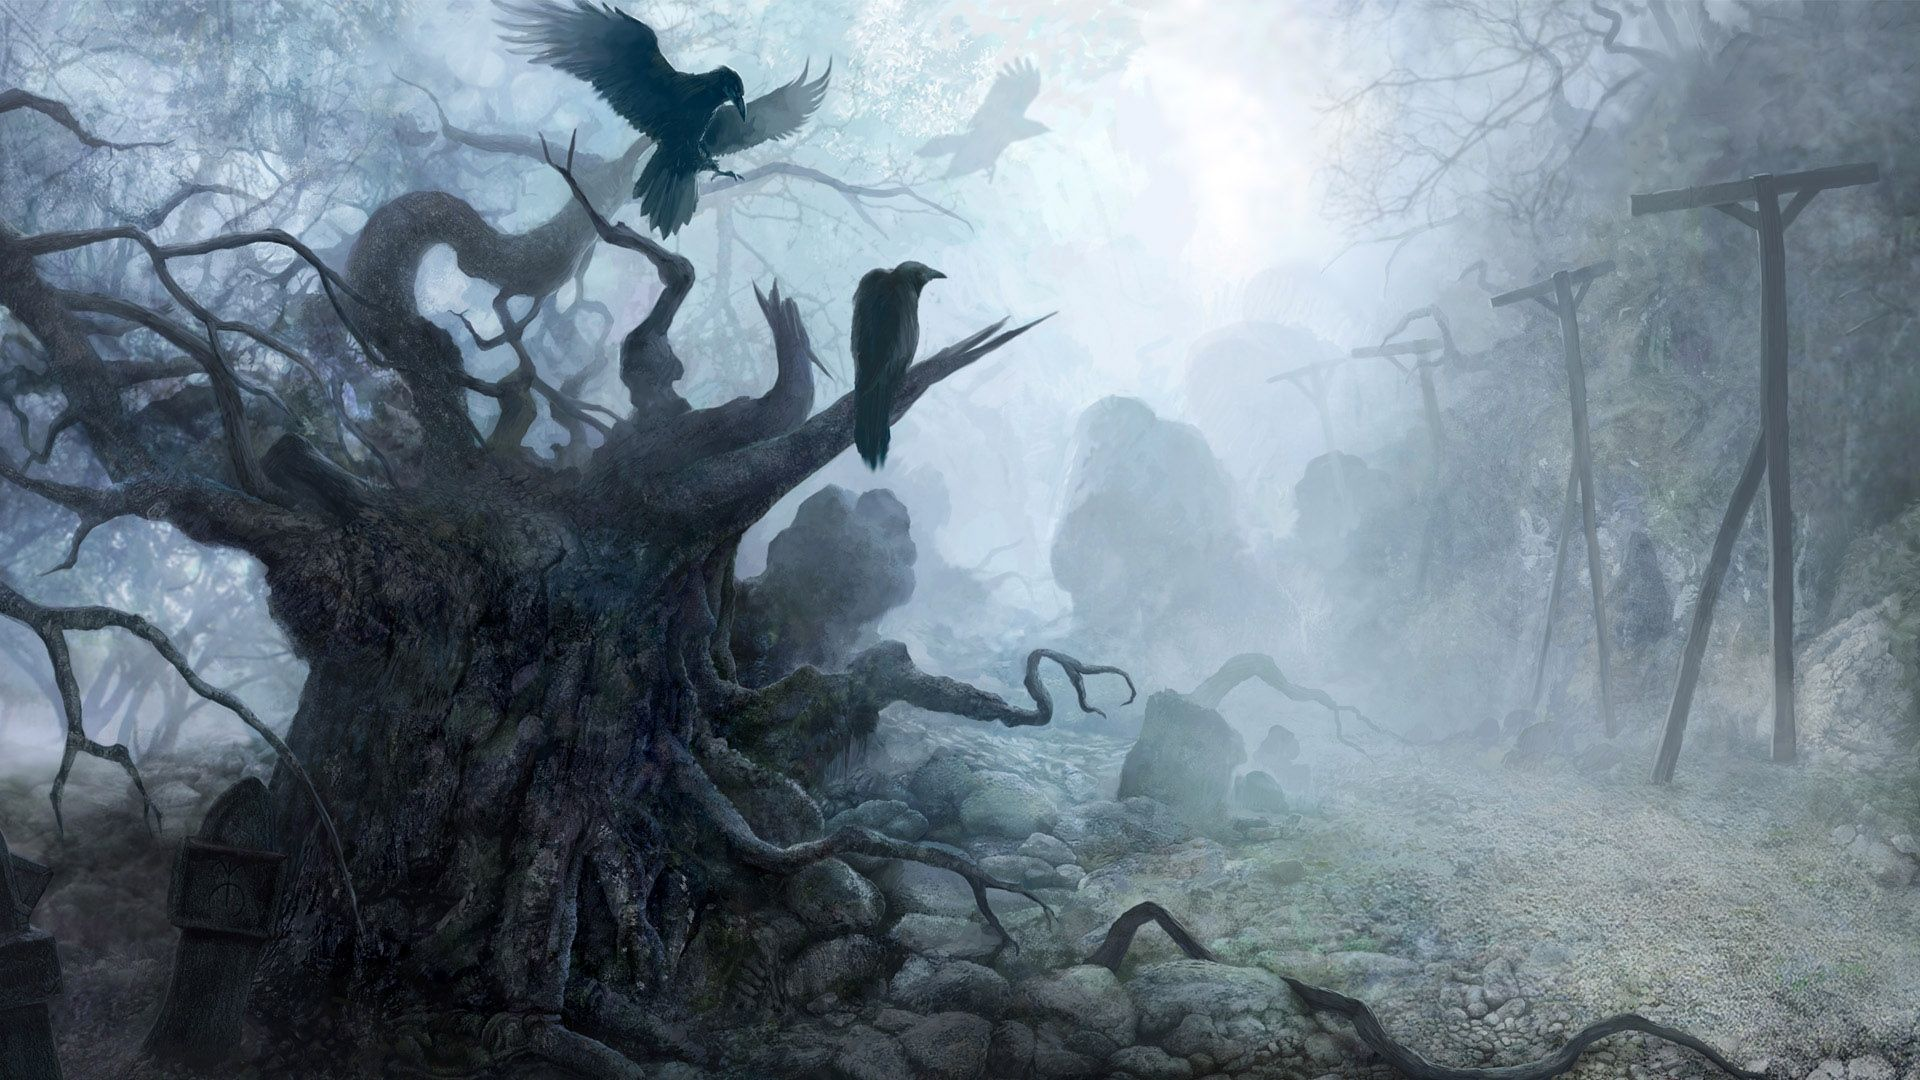 May-or-may-not-be-fantasy-but-when-it-is-it-s-the-Dark-Fantasy-version-of-Fairy-Tale-Retelling-De-wallpaper-wp3408475